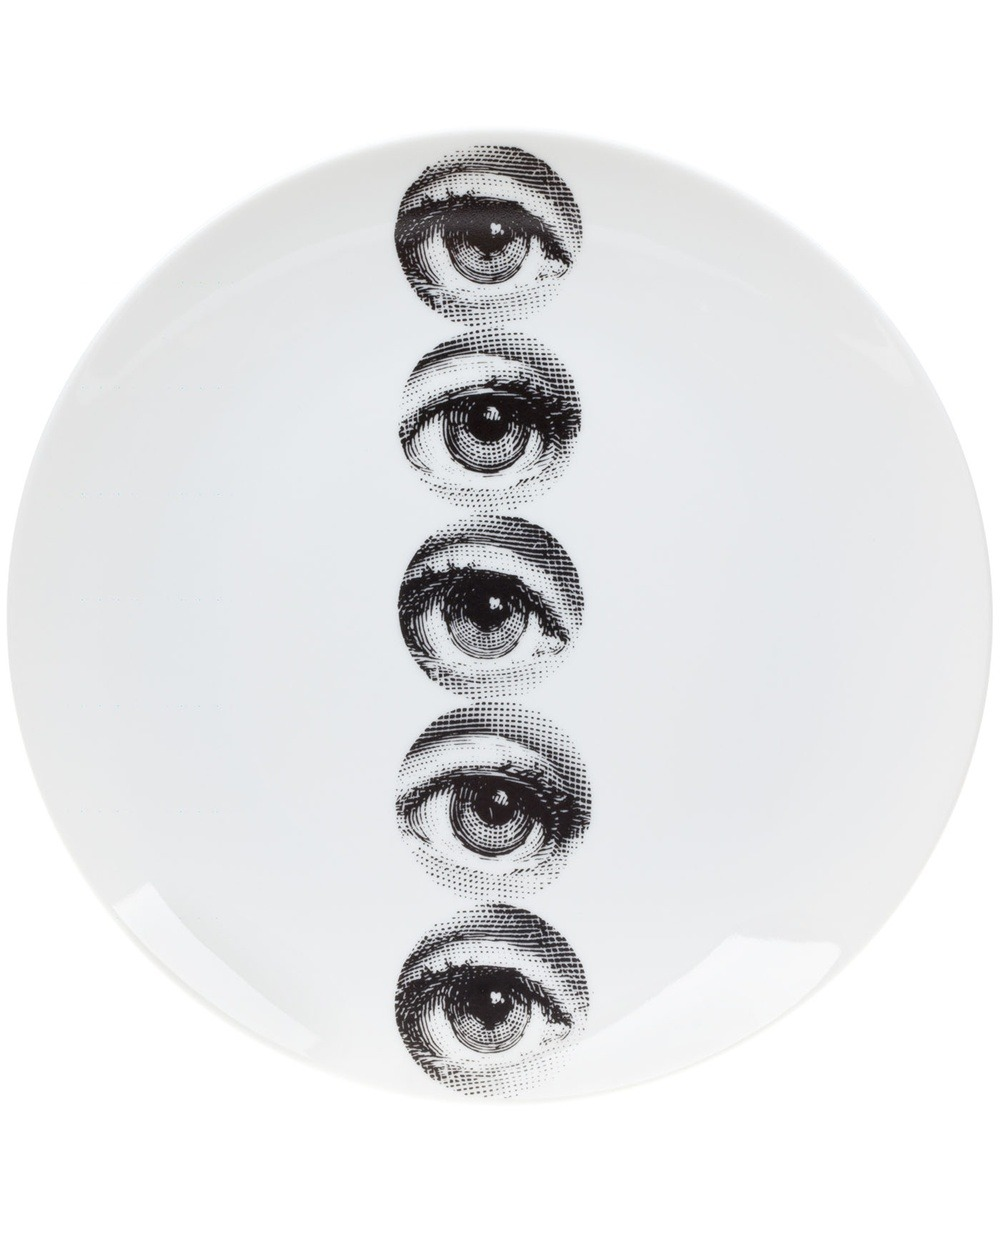 lushlight:  Fornasetti Ceramics via